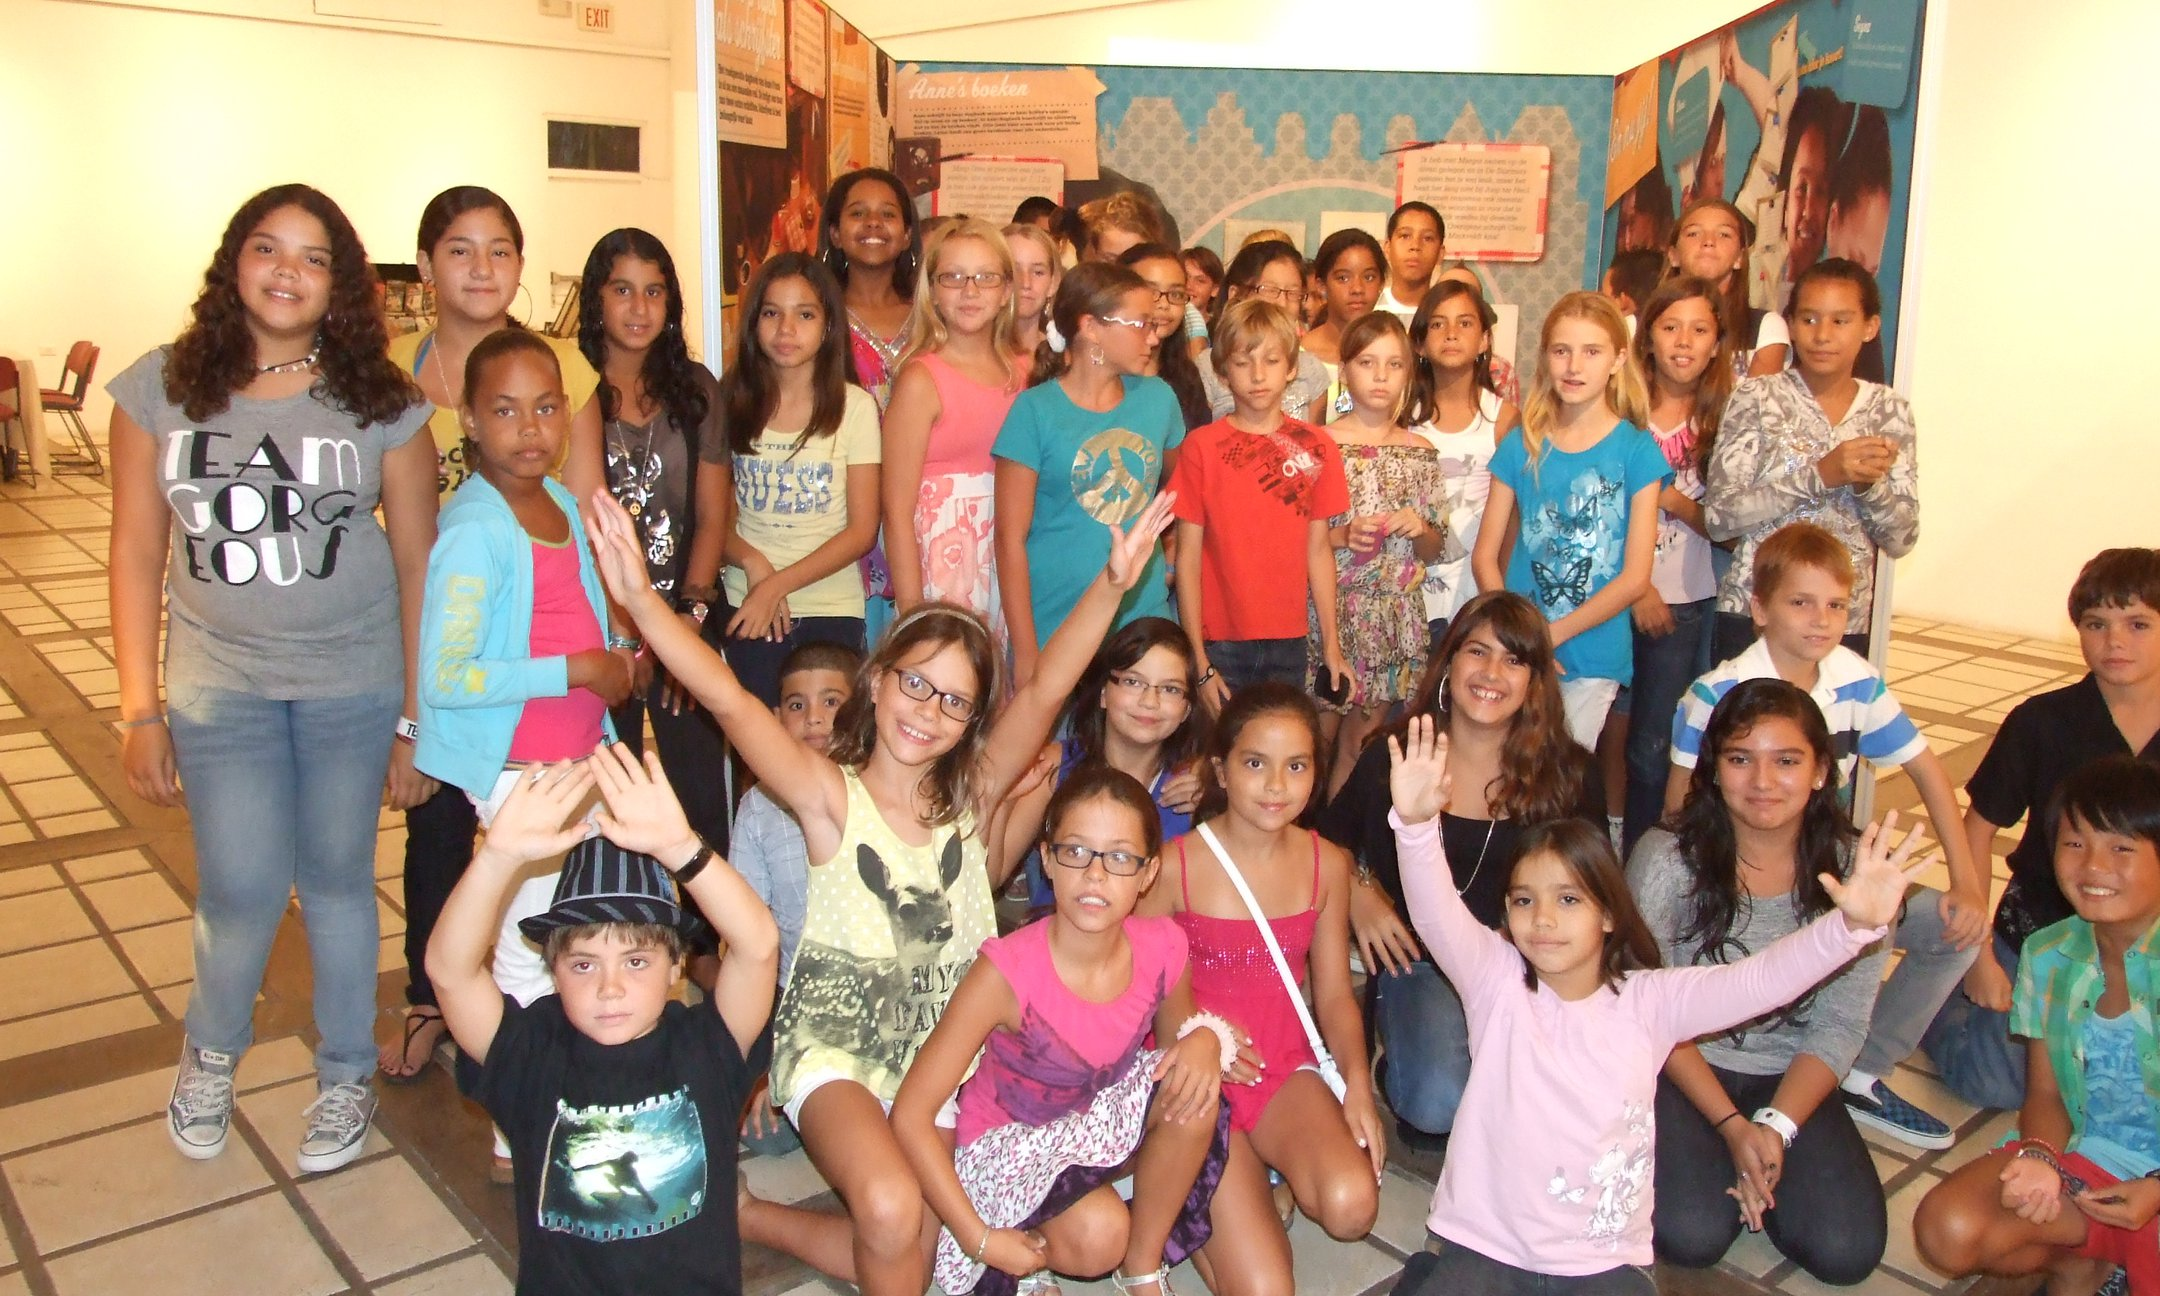 Students of the Mon Cheri school at opening of the exhibition in Cas di Cultura Oranjestad, Aruba (2011)